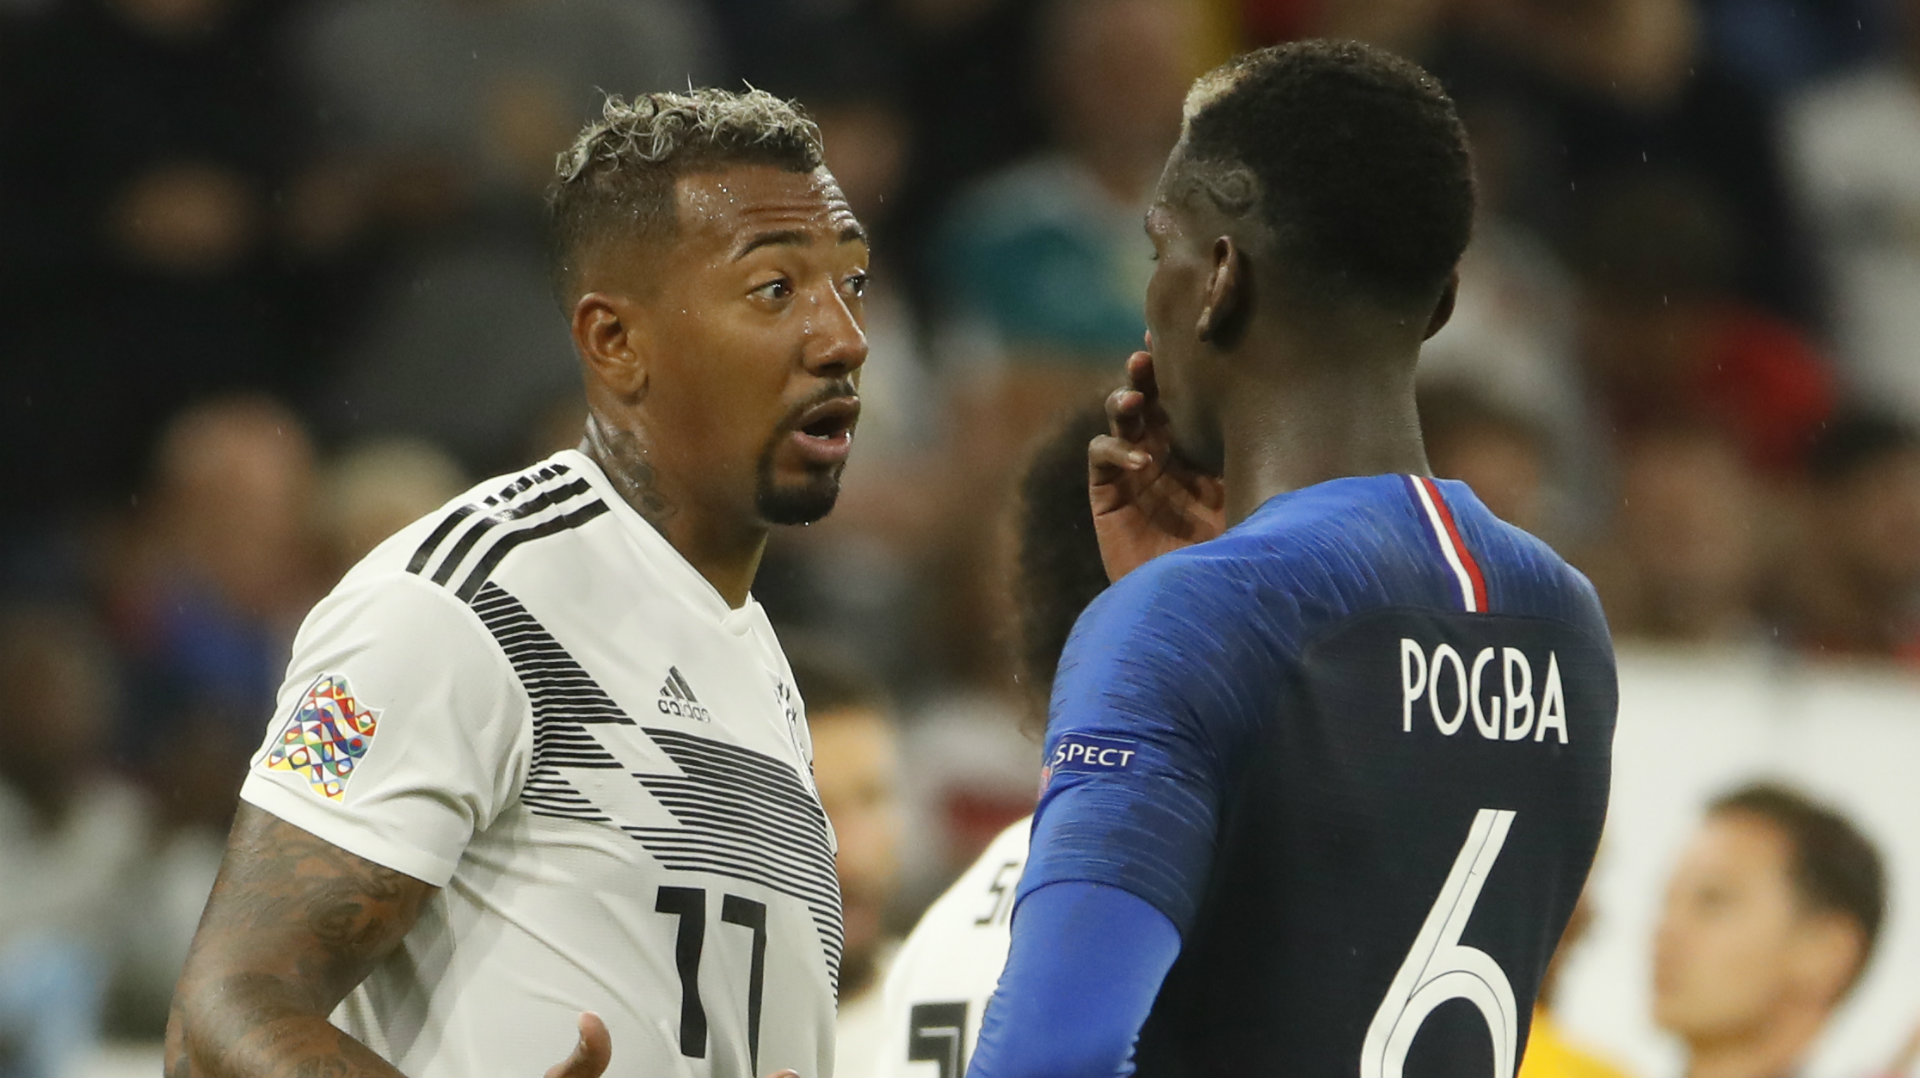 Germany & Bayern Munich's Jerome Boateng reveals conversation rejecting Manchester United offer